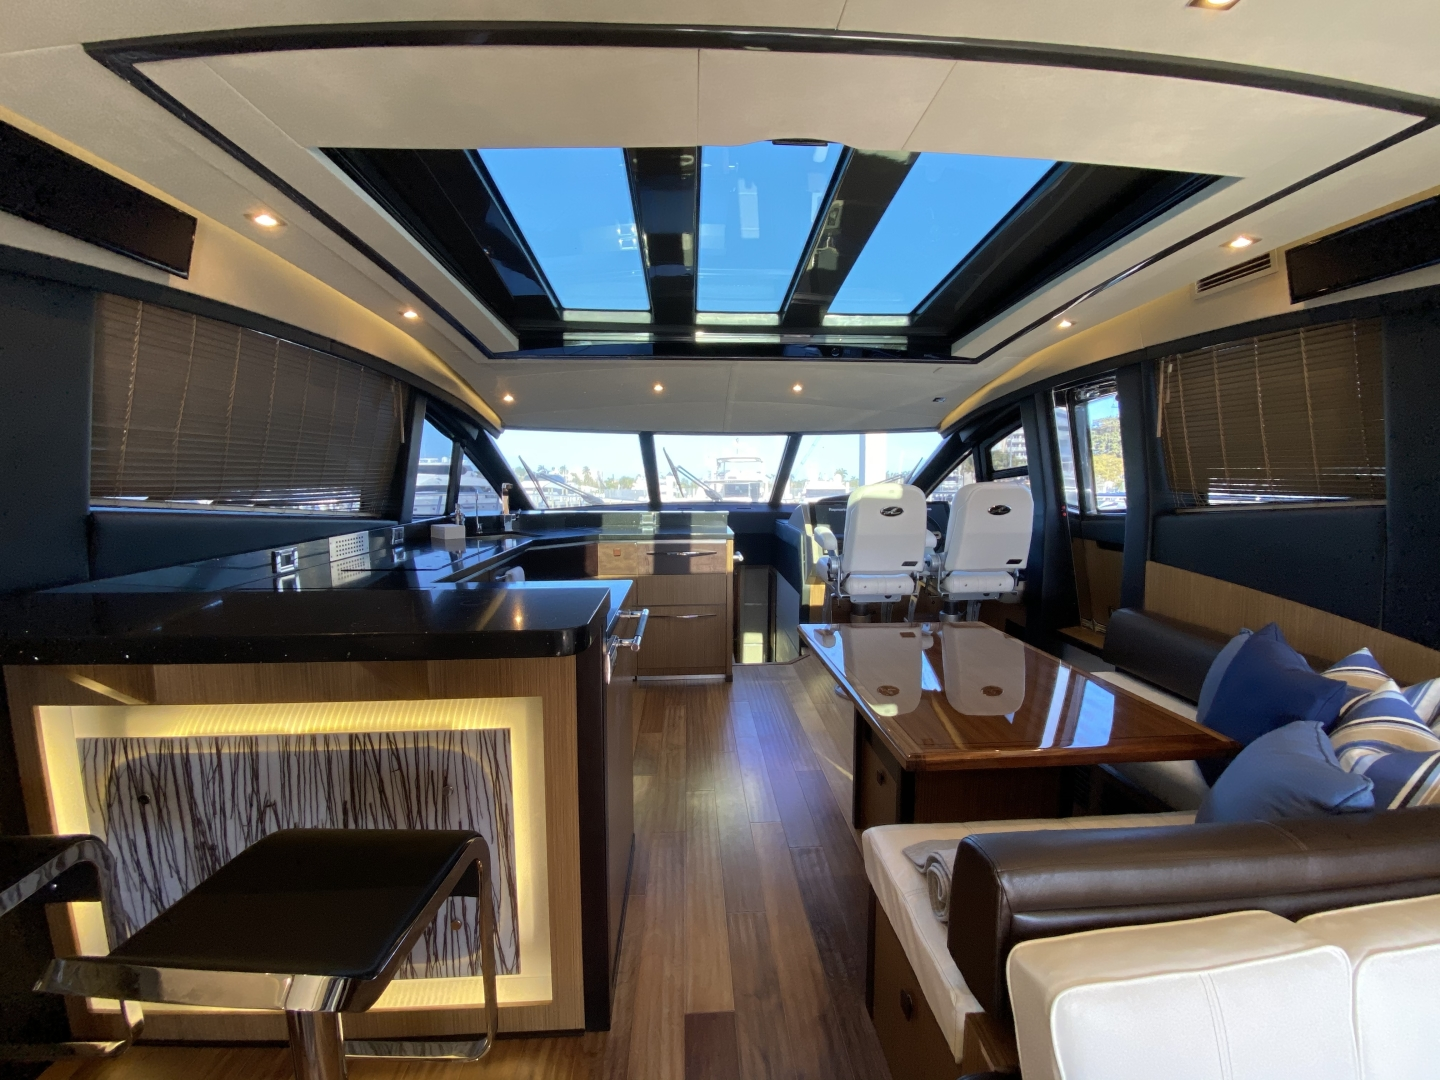 Sea Ray-L650 Express 2016-Cozy Fort Lauderdale-Florida-United States-2016 Sea Ray L650 Galley-1367655 | Thumbnail